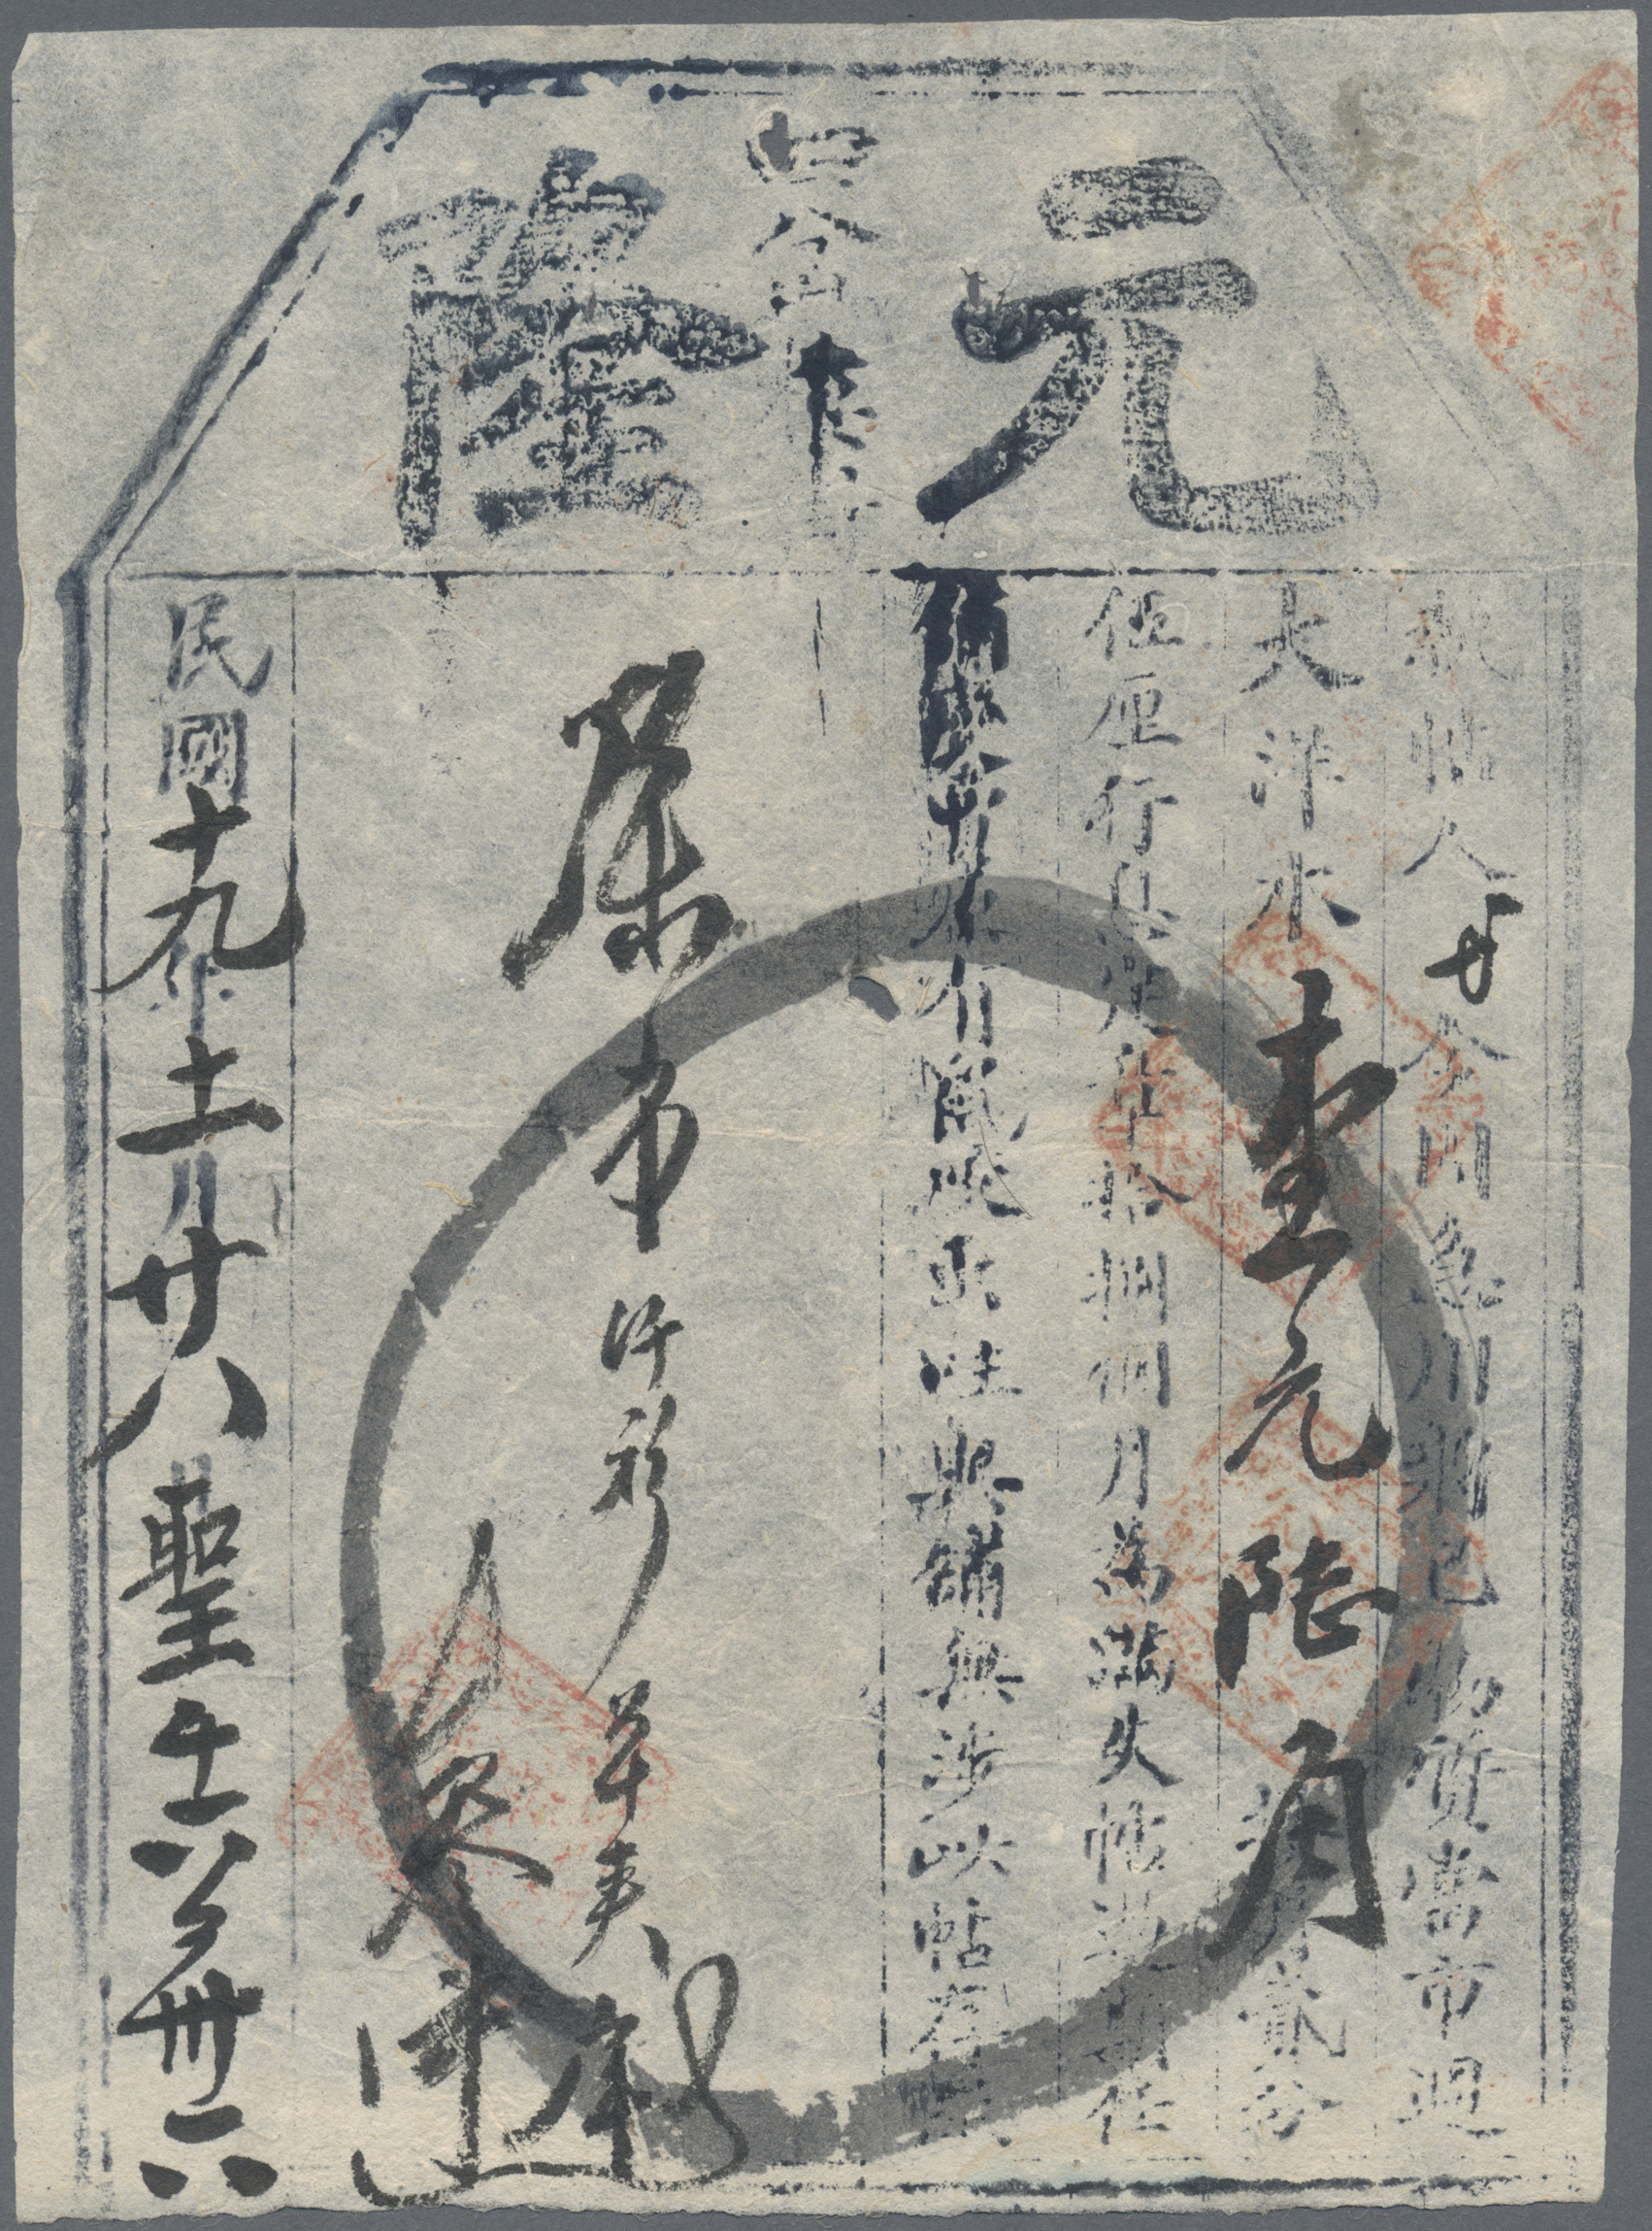 Lot 00049 - China | Banknoten  -  Auktionshaus Christoph Gärtner GmbH & Co. KG 51th Auction - Day 1